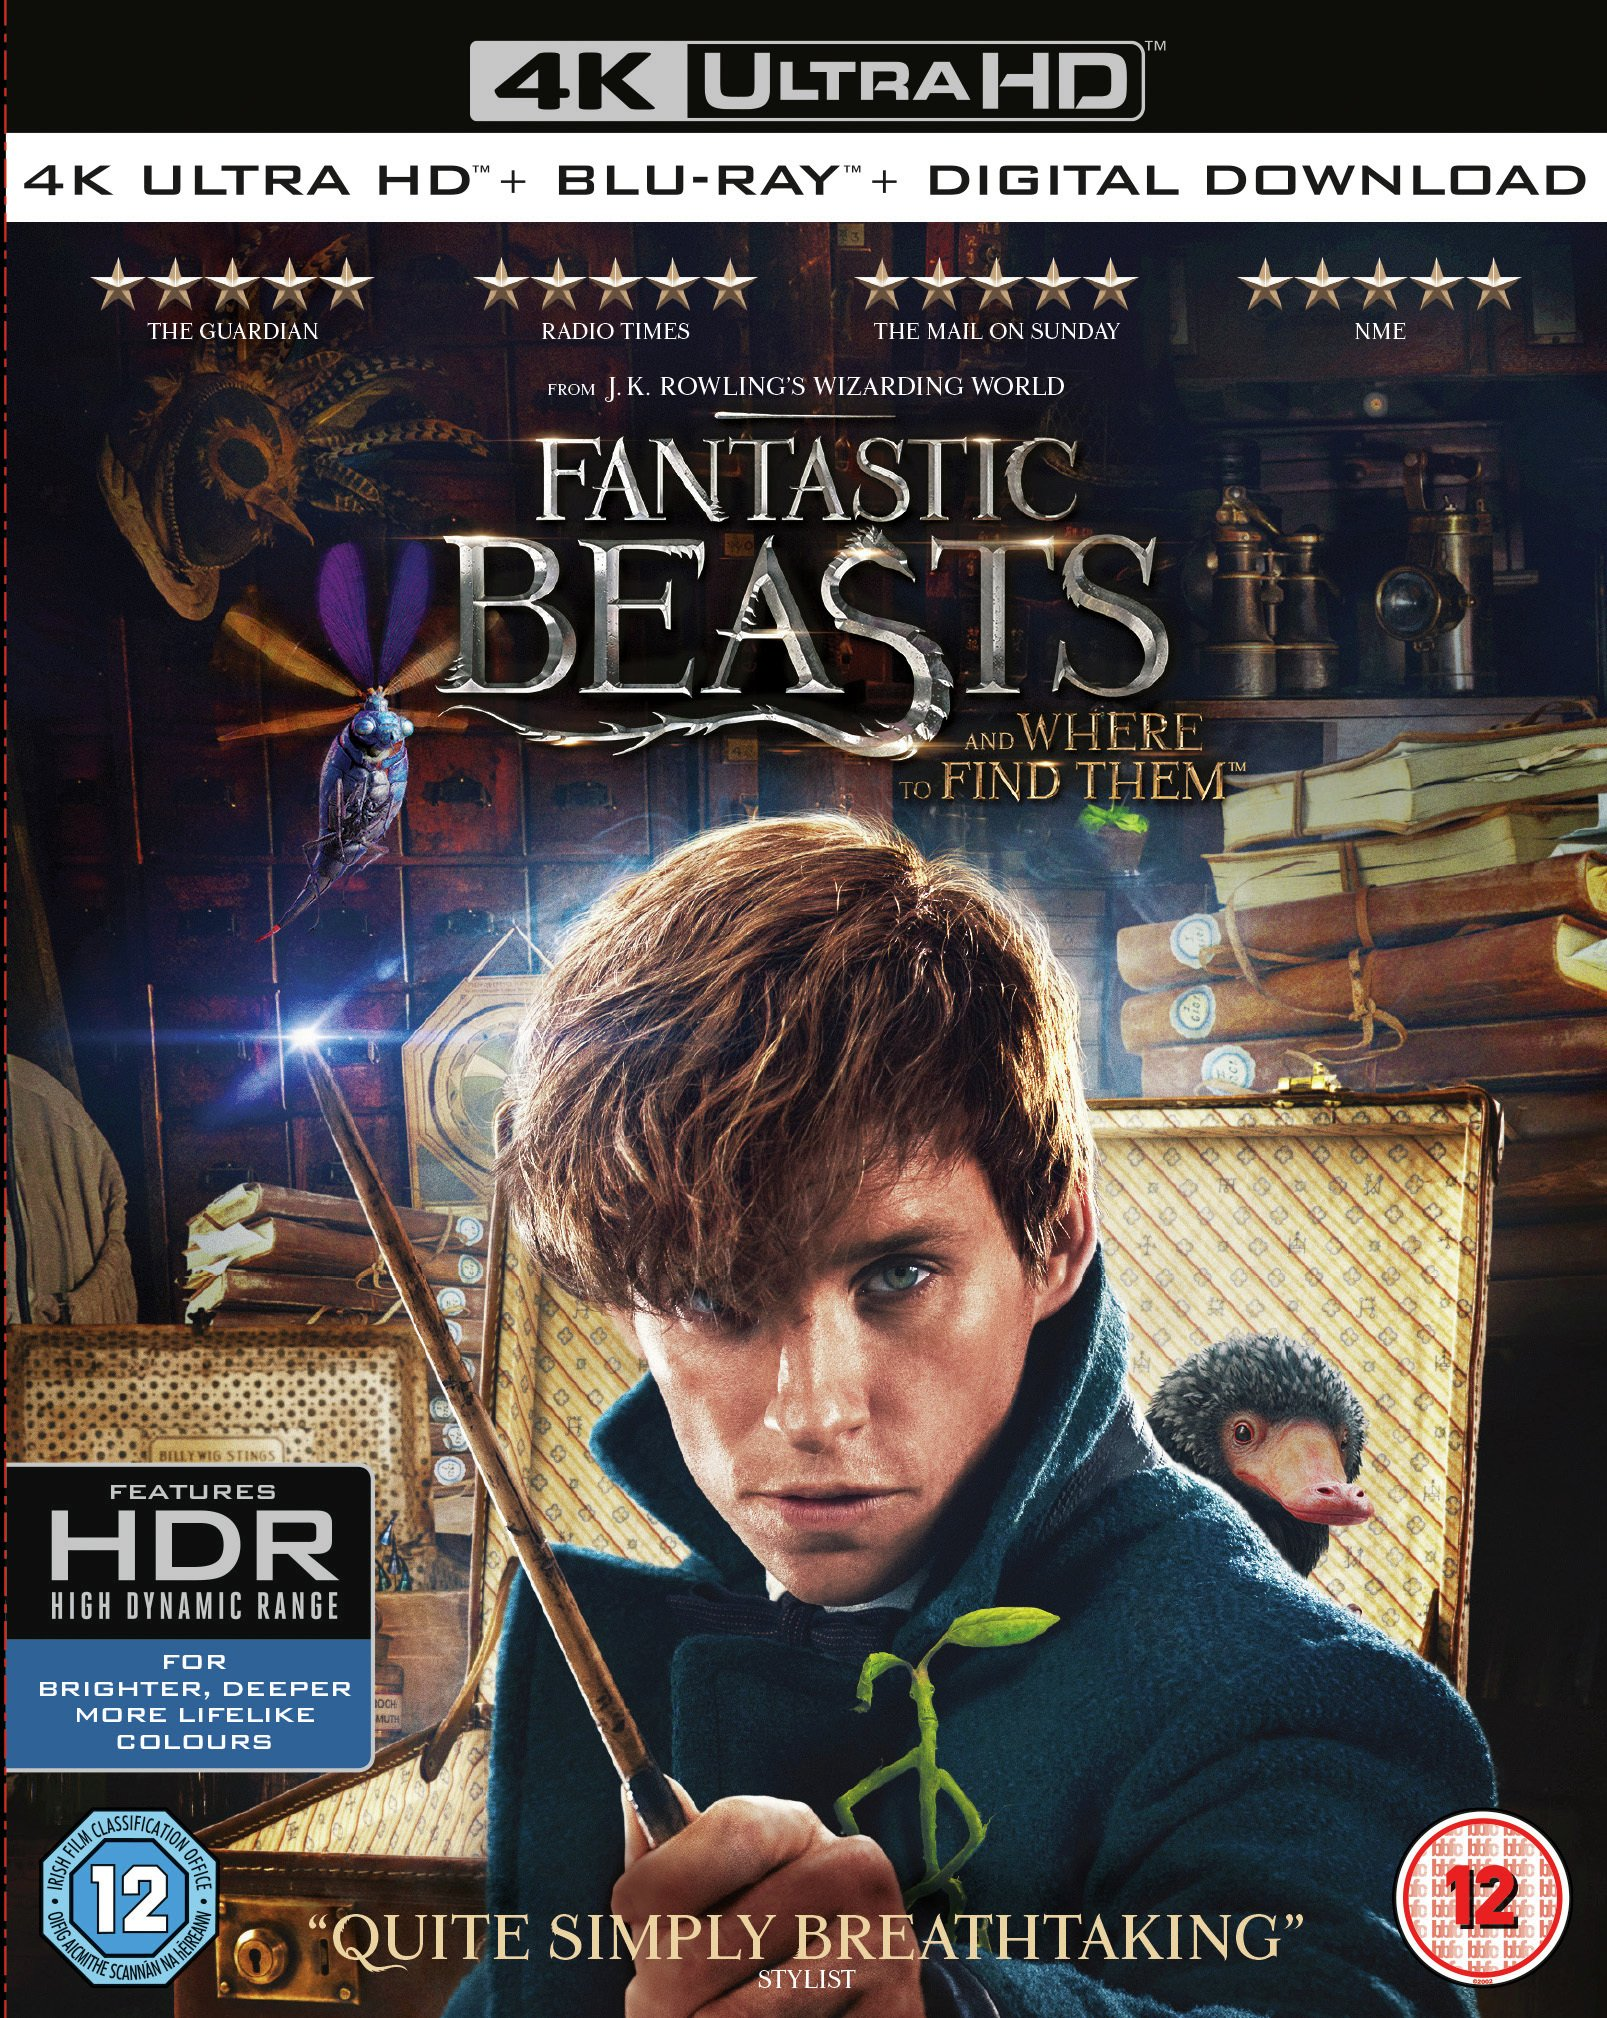 Fantastic Beasts and Where to Find Them 4K DVD.